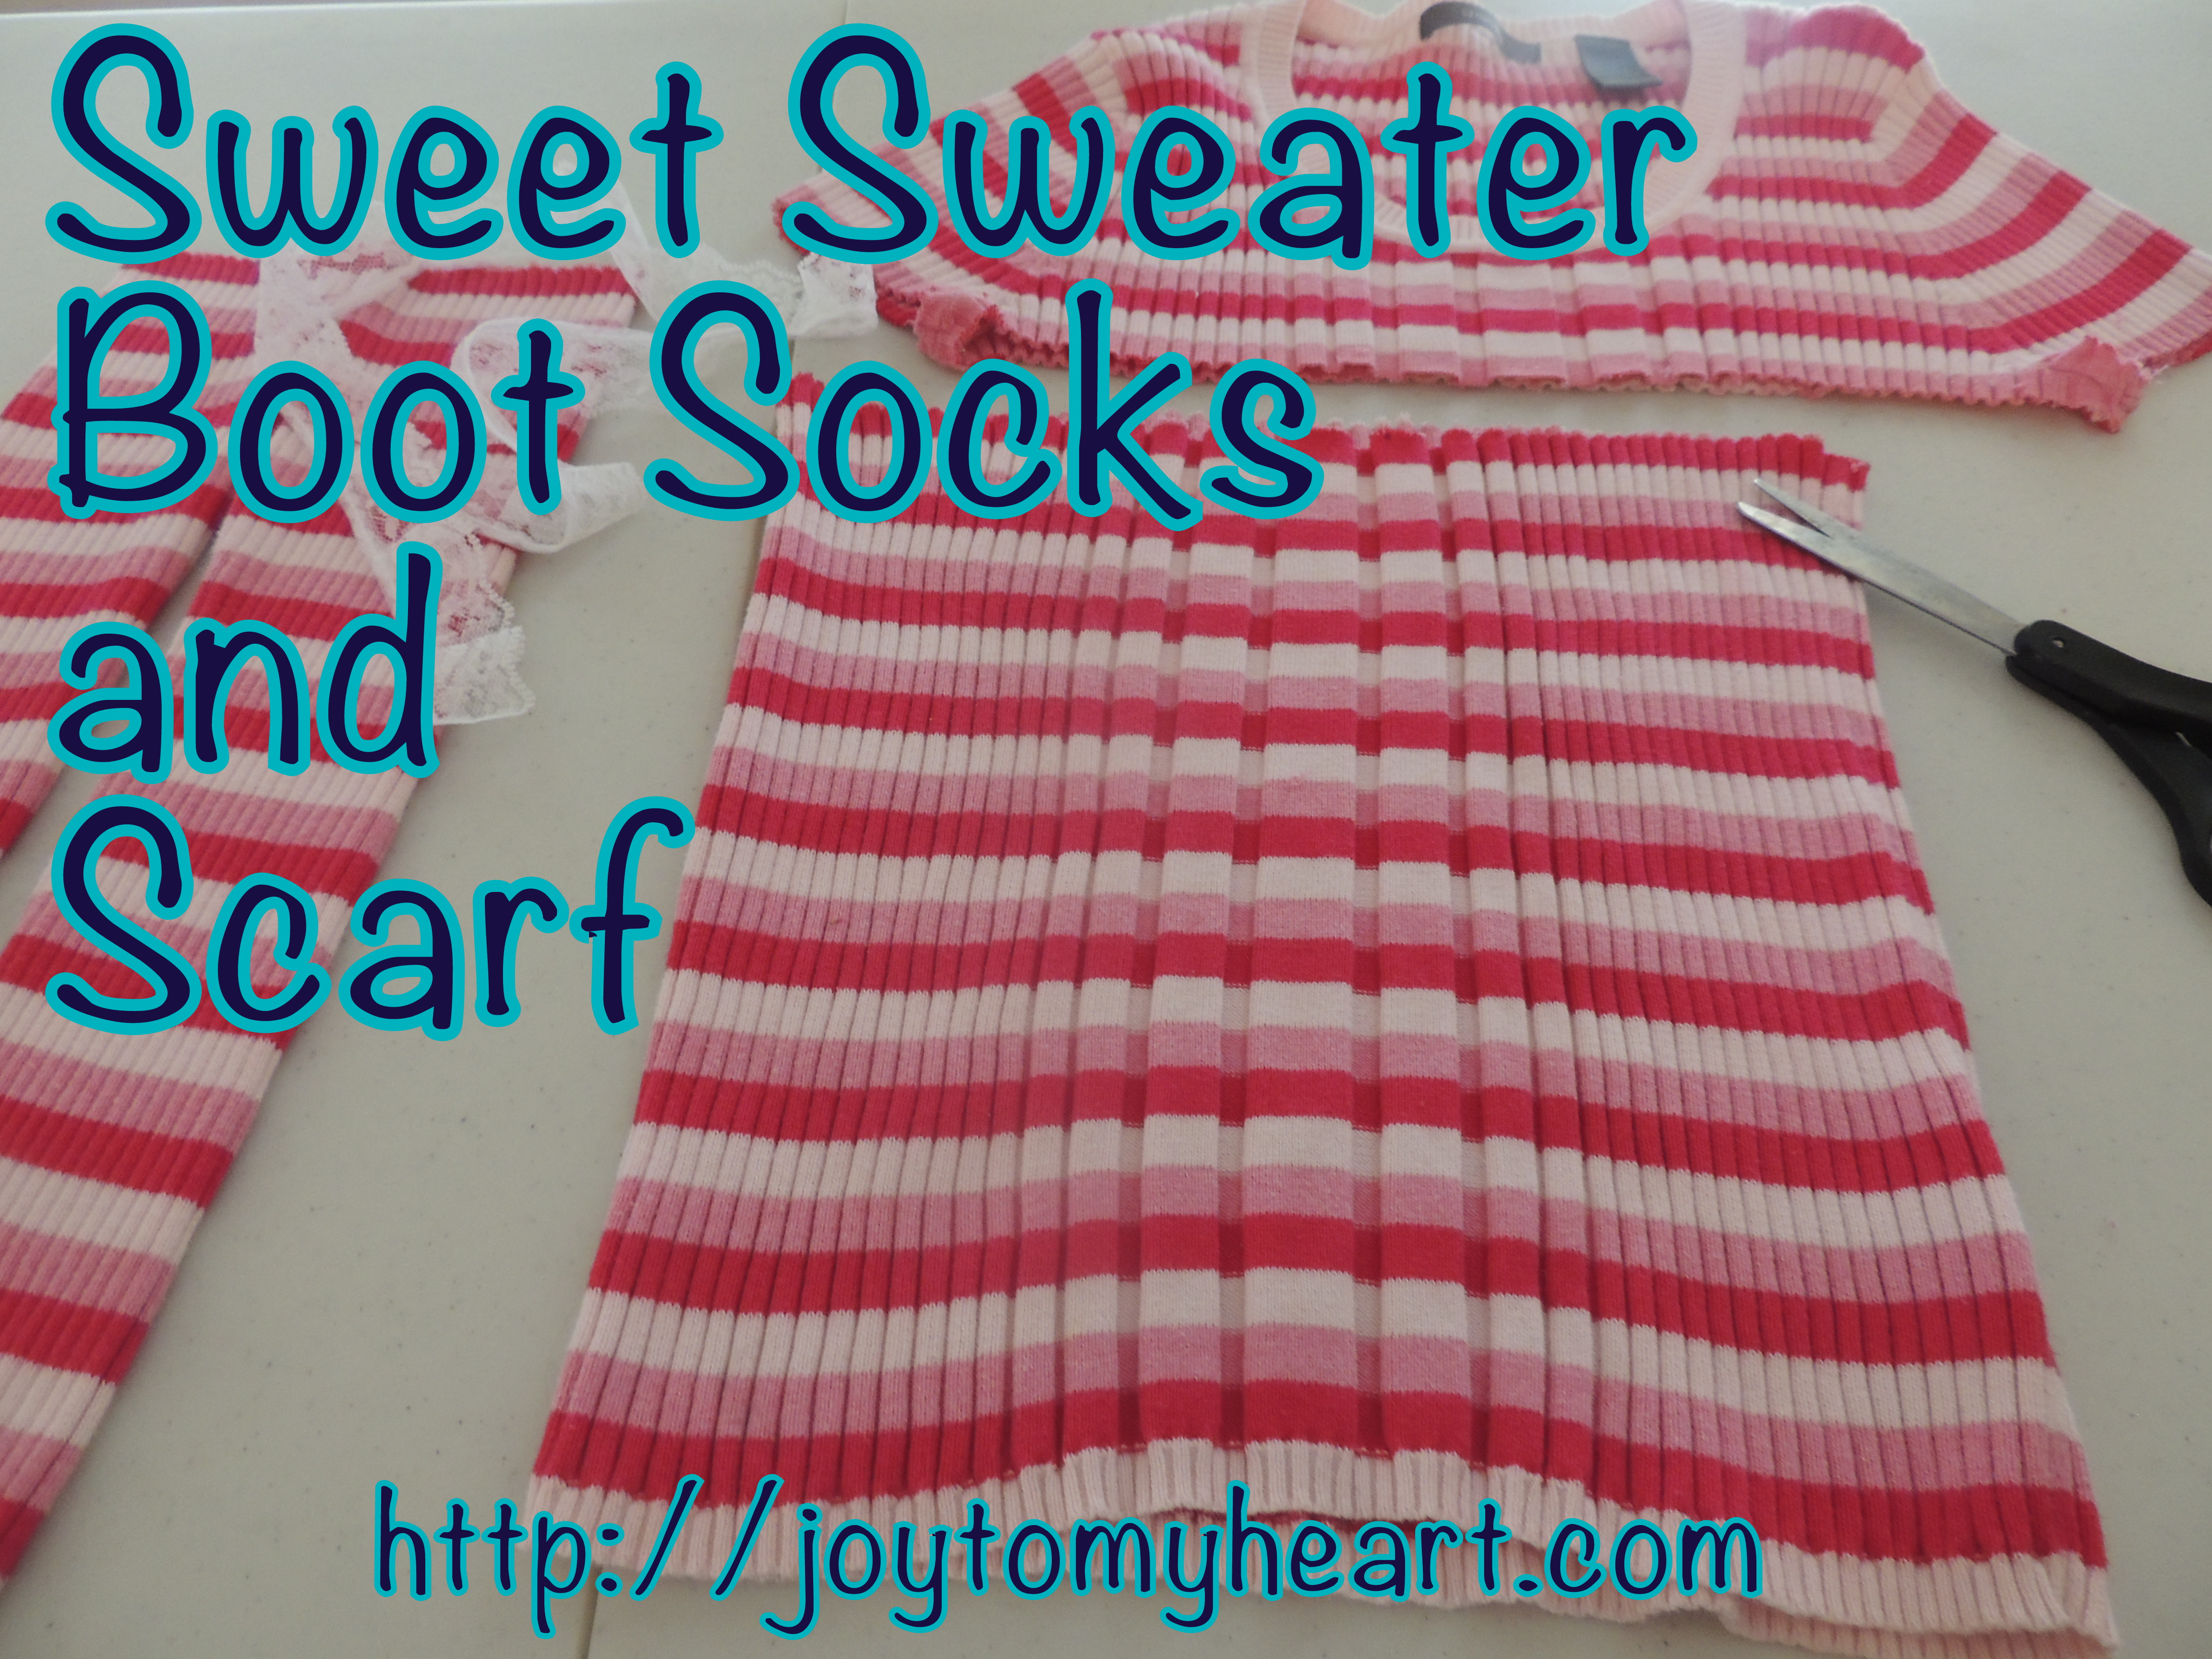 sweet sweater boot socks and scarf